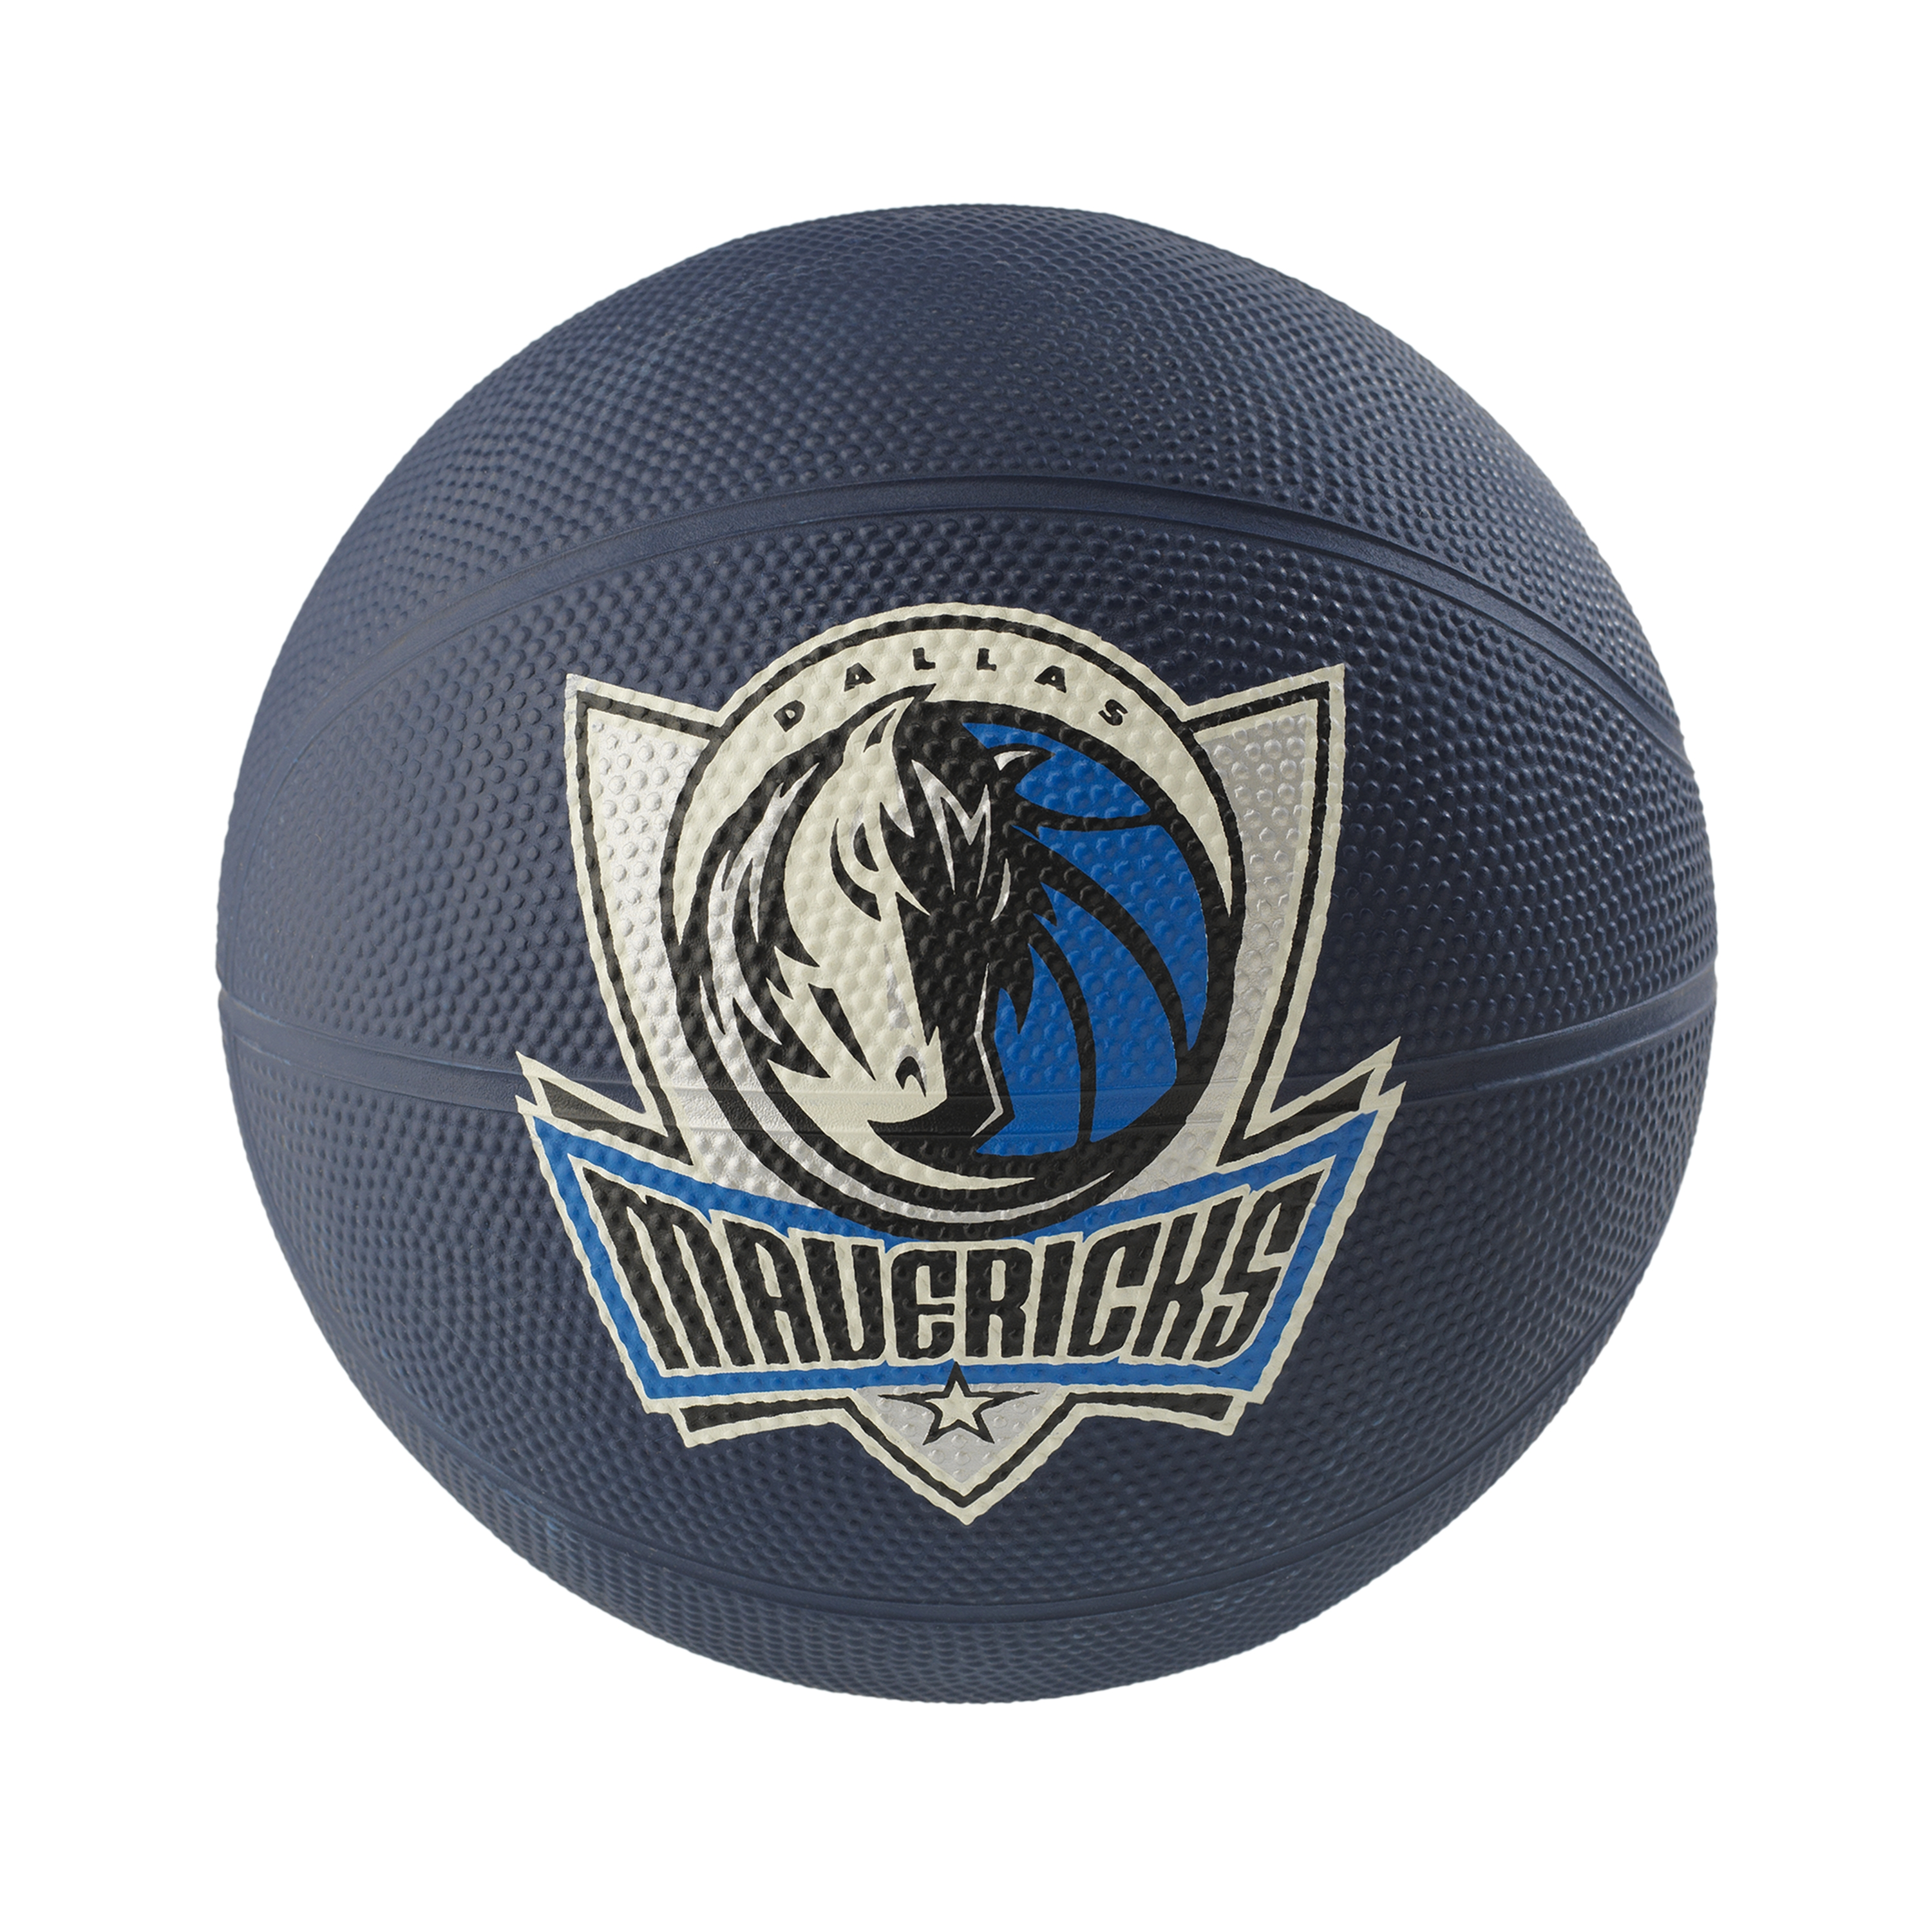 Spalding NBA Dallas Mavericks Team Mini